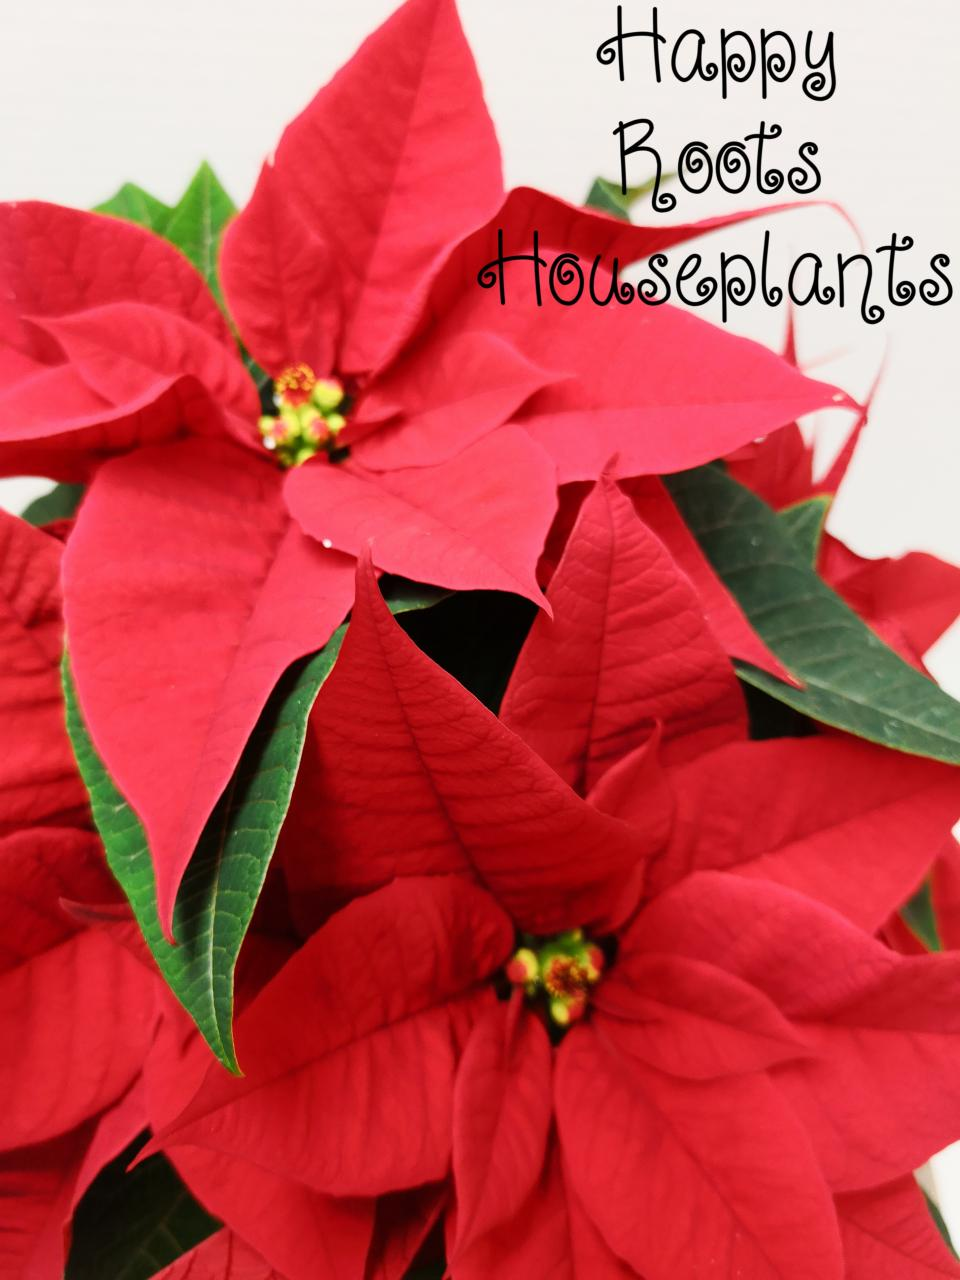 Red Poinsettia - Happy Roots Houseplants - Kingston Indoor Plant Shop